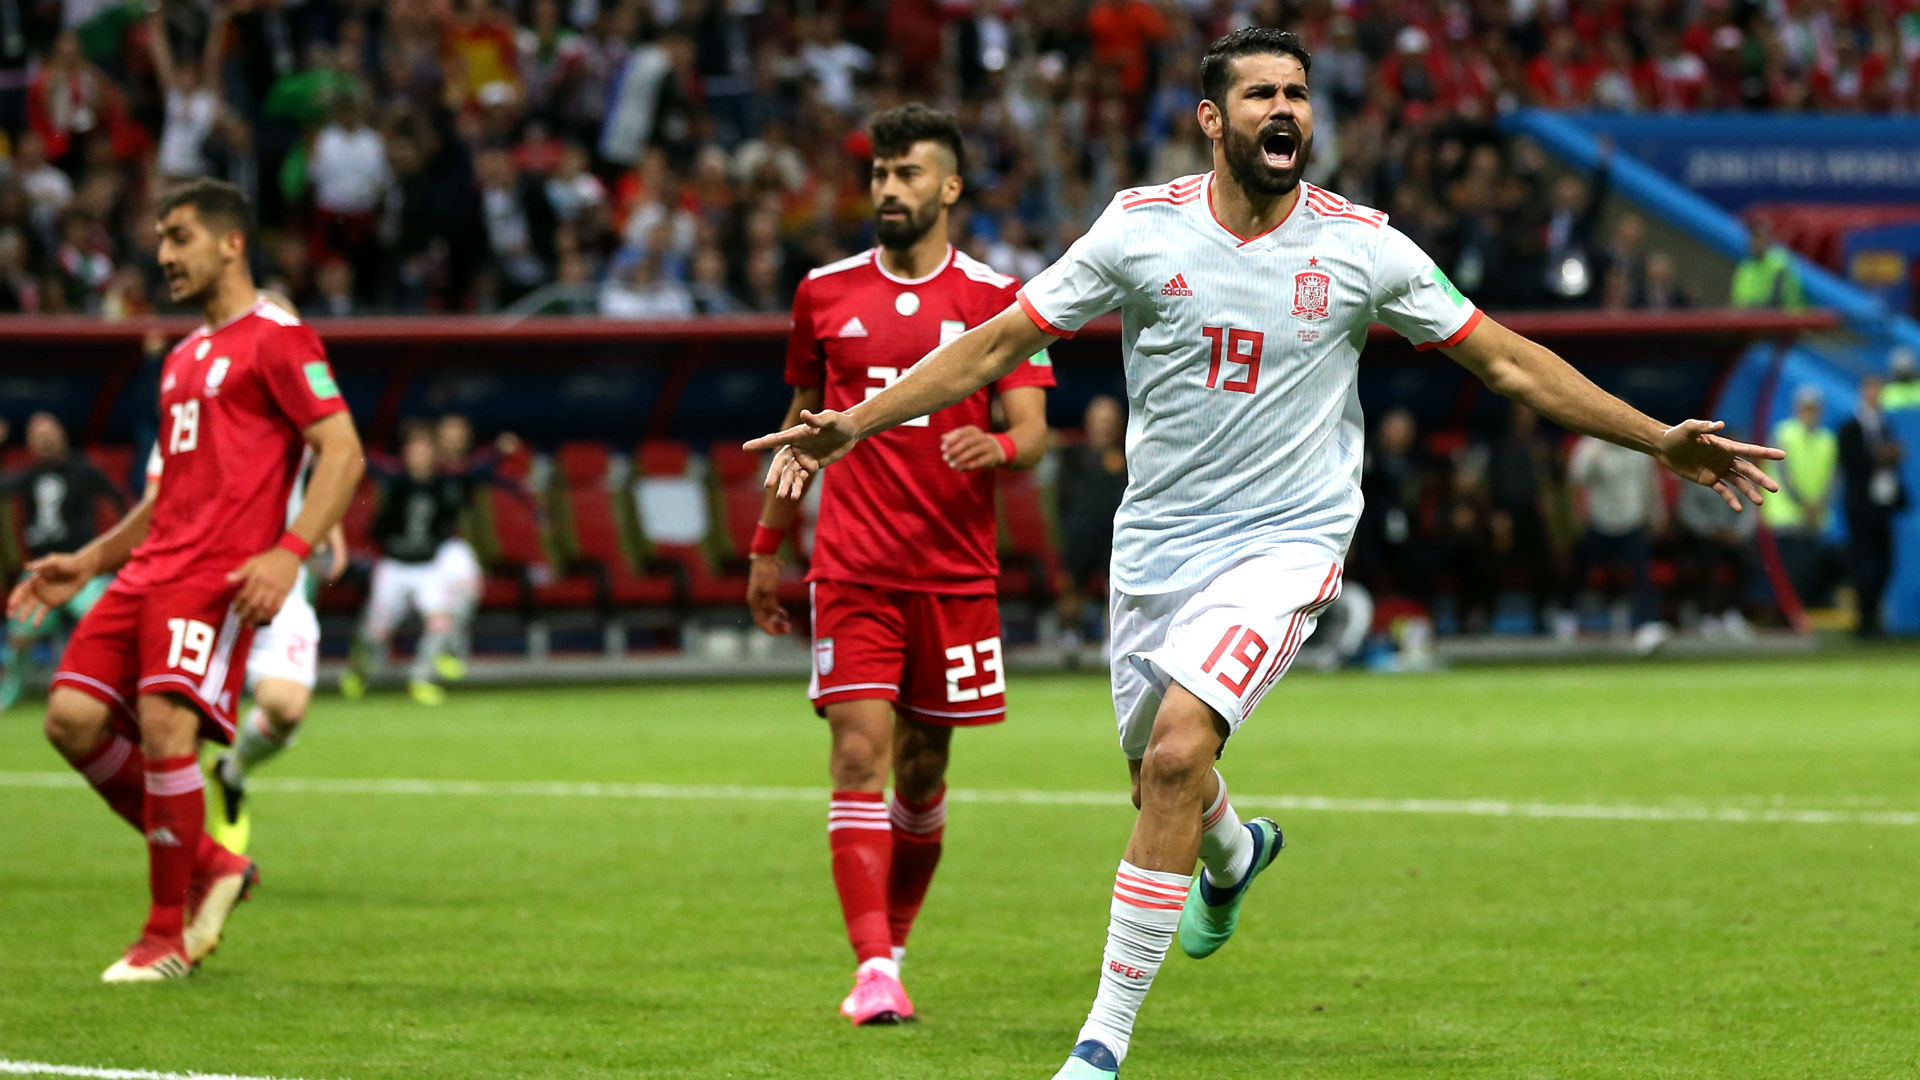 Spain beats Iran in 1-0 victory at World Cup